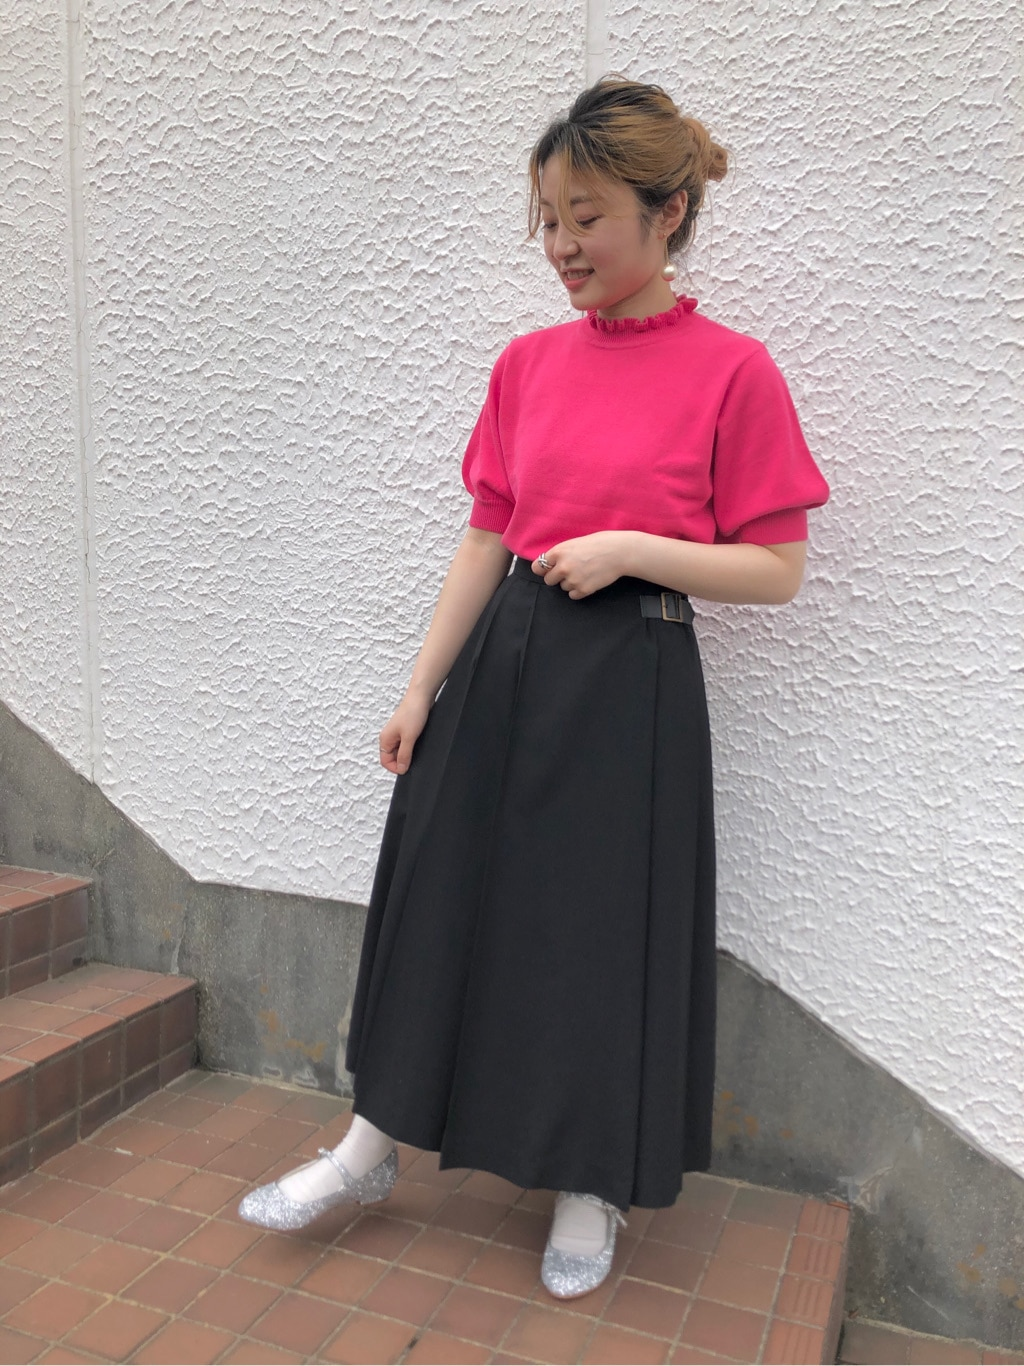 Dot and Stripes CHILD WOMAN ラフォーレ原宿 身長:153cm 2020.06.10